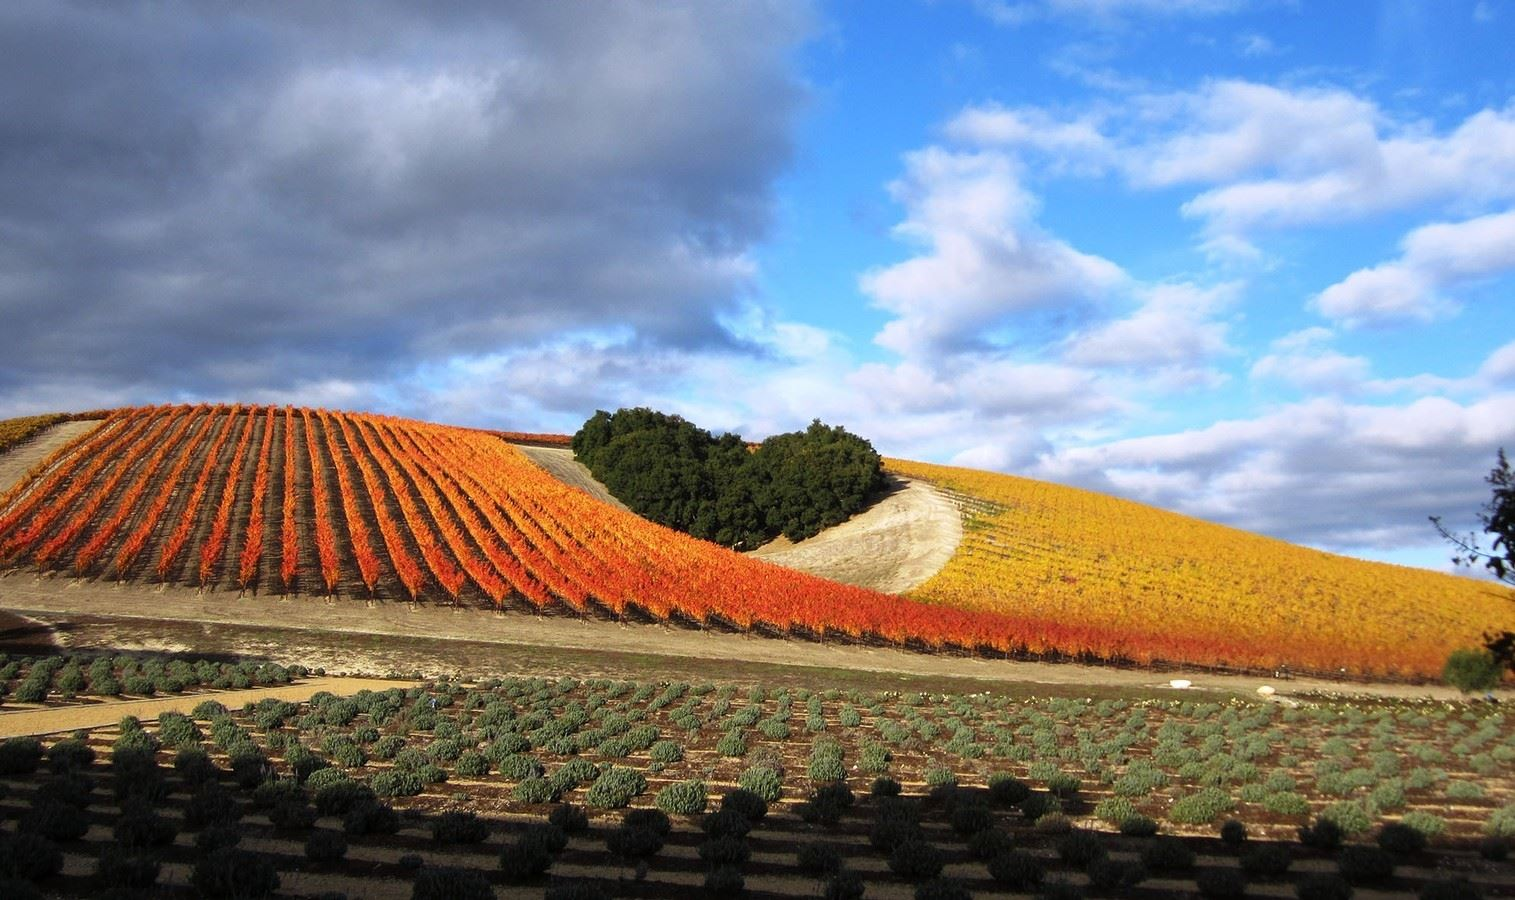 Niner Winery in Paso Robles, CA